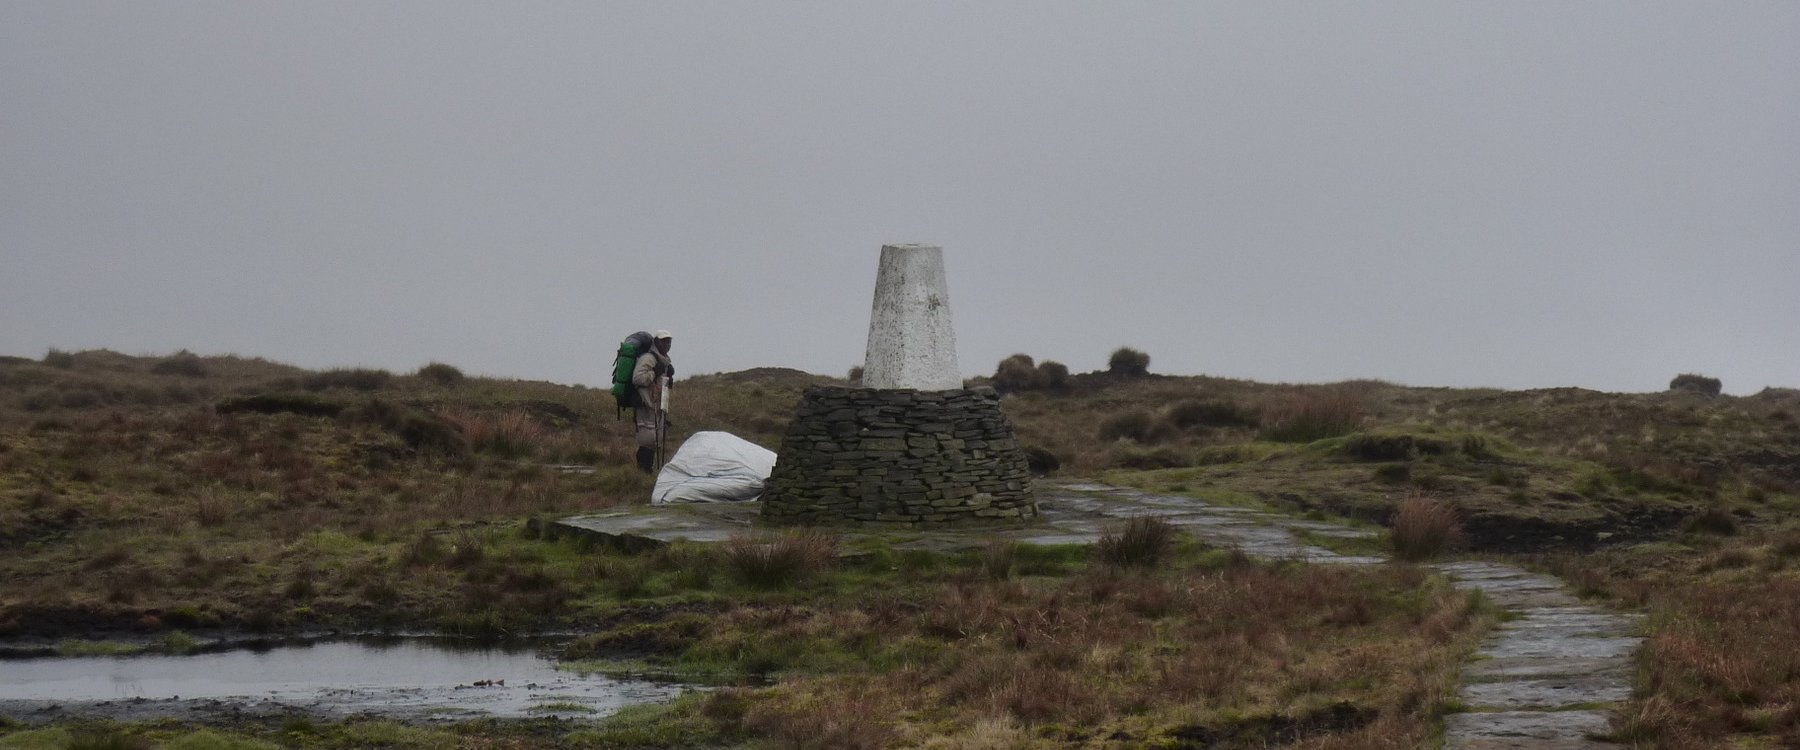 Trig point on Black Hill